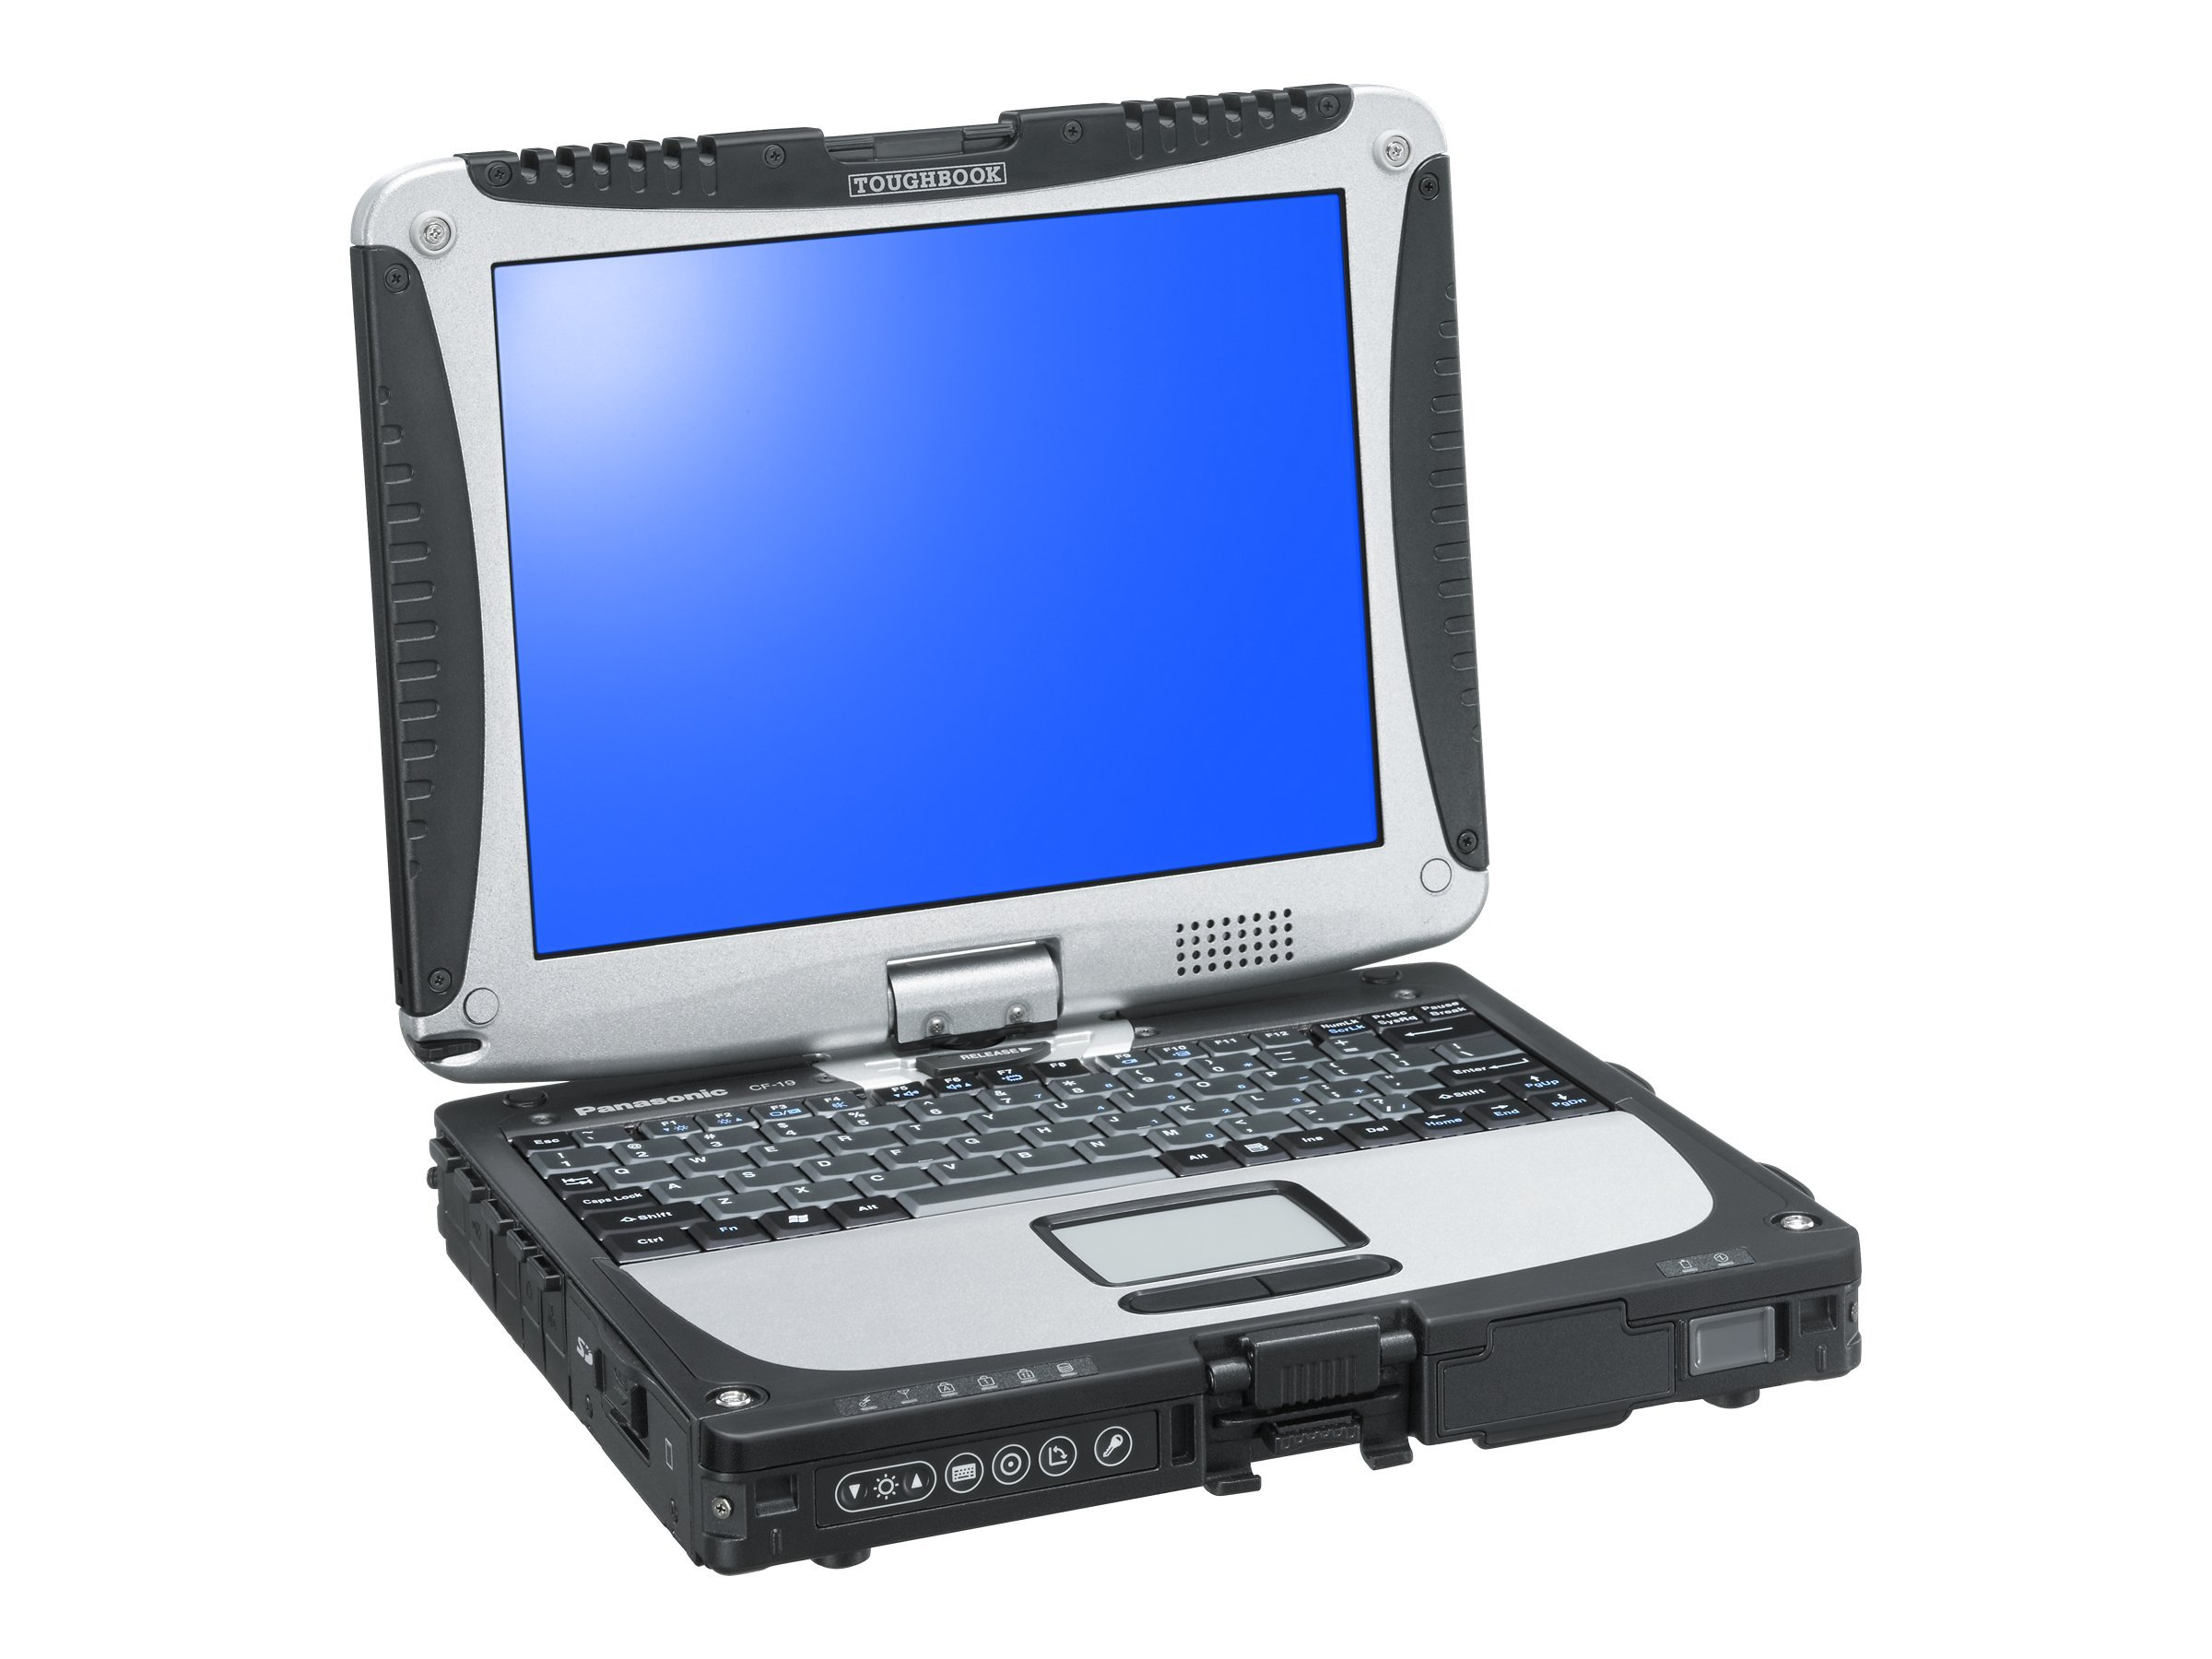 Panasonic Toughbook 19 vPro Core i5-3610ME 2.7GHz 10.1 XGA MT W7 (W8.1P COA), CF-19ZA363CM, 18496884, Notebooks - Convertible